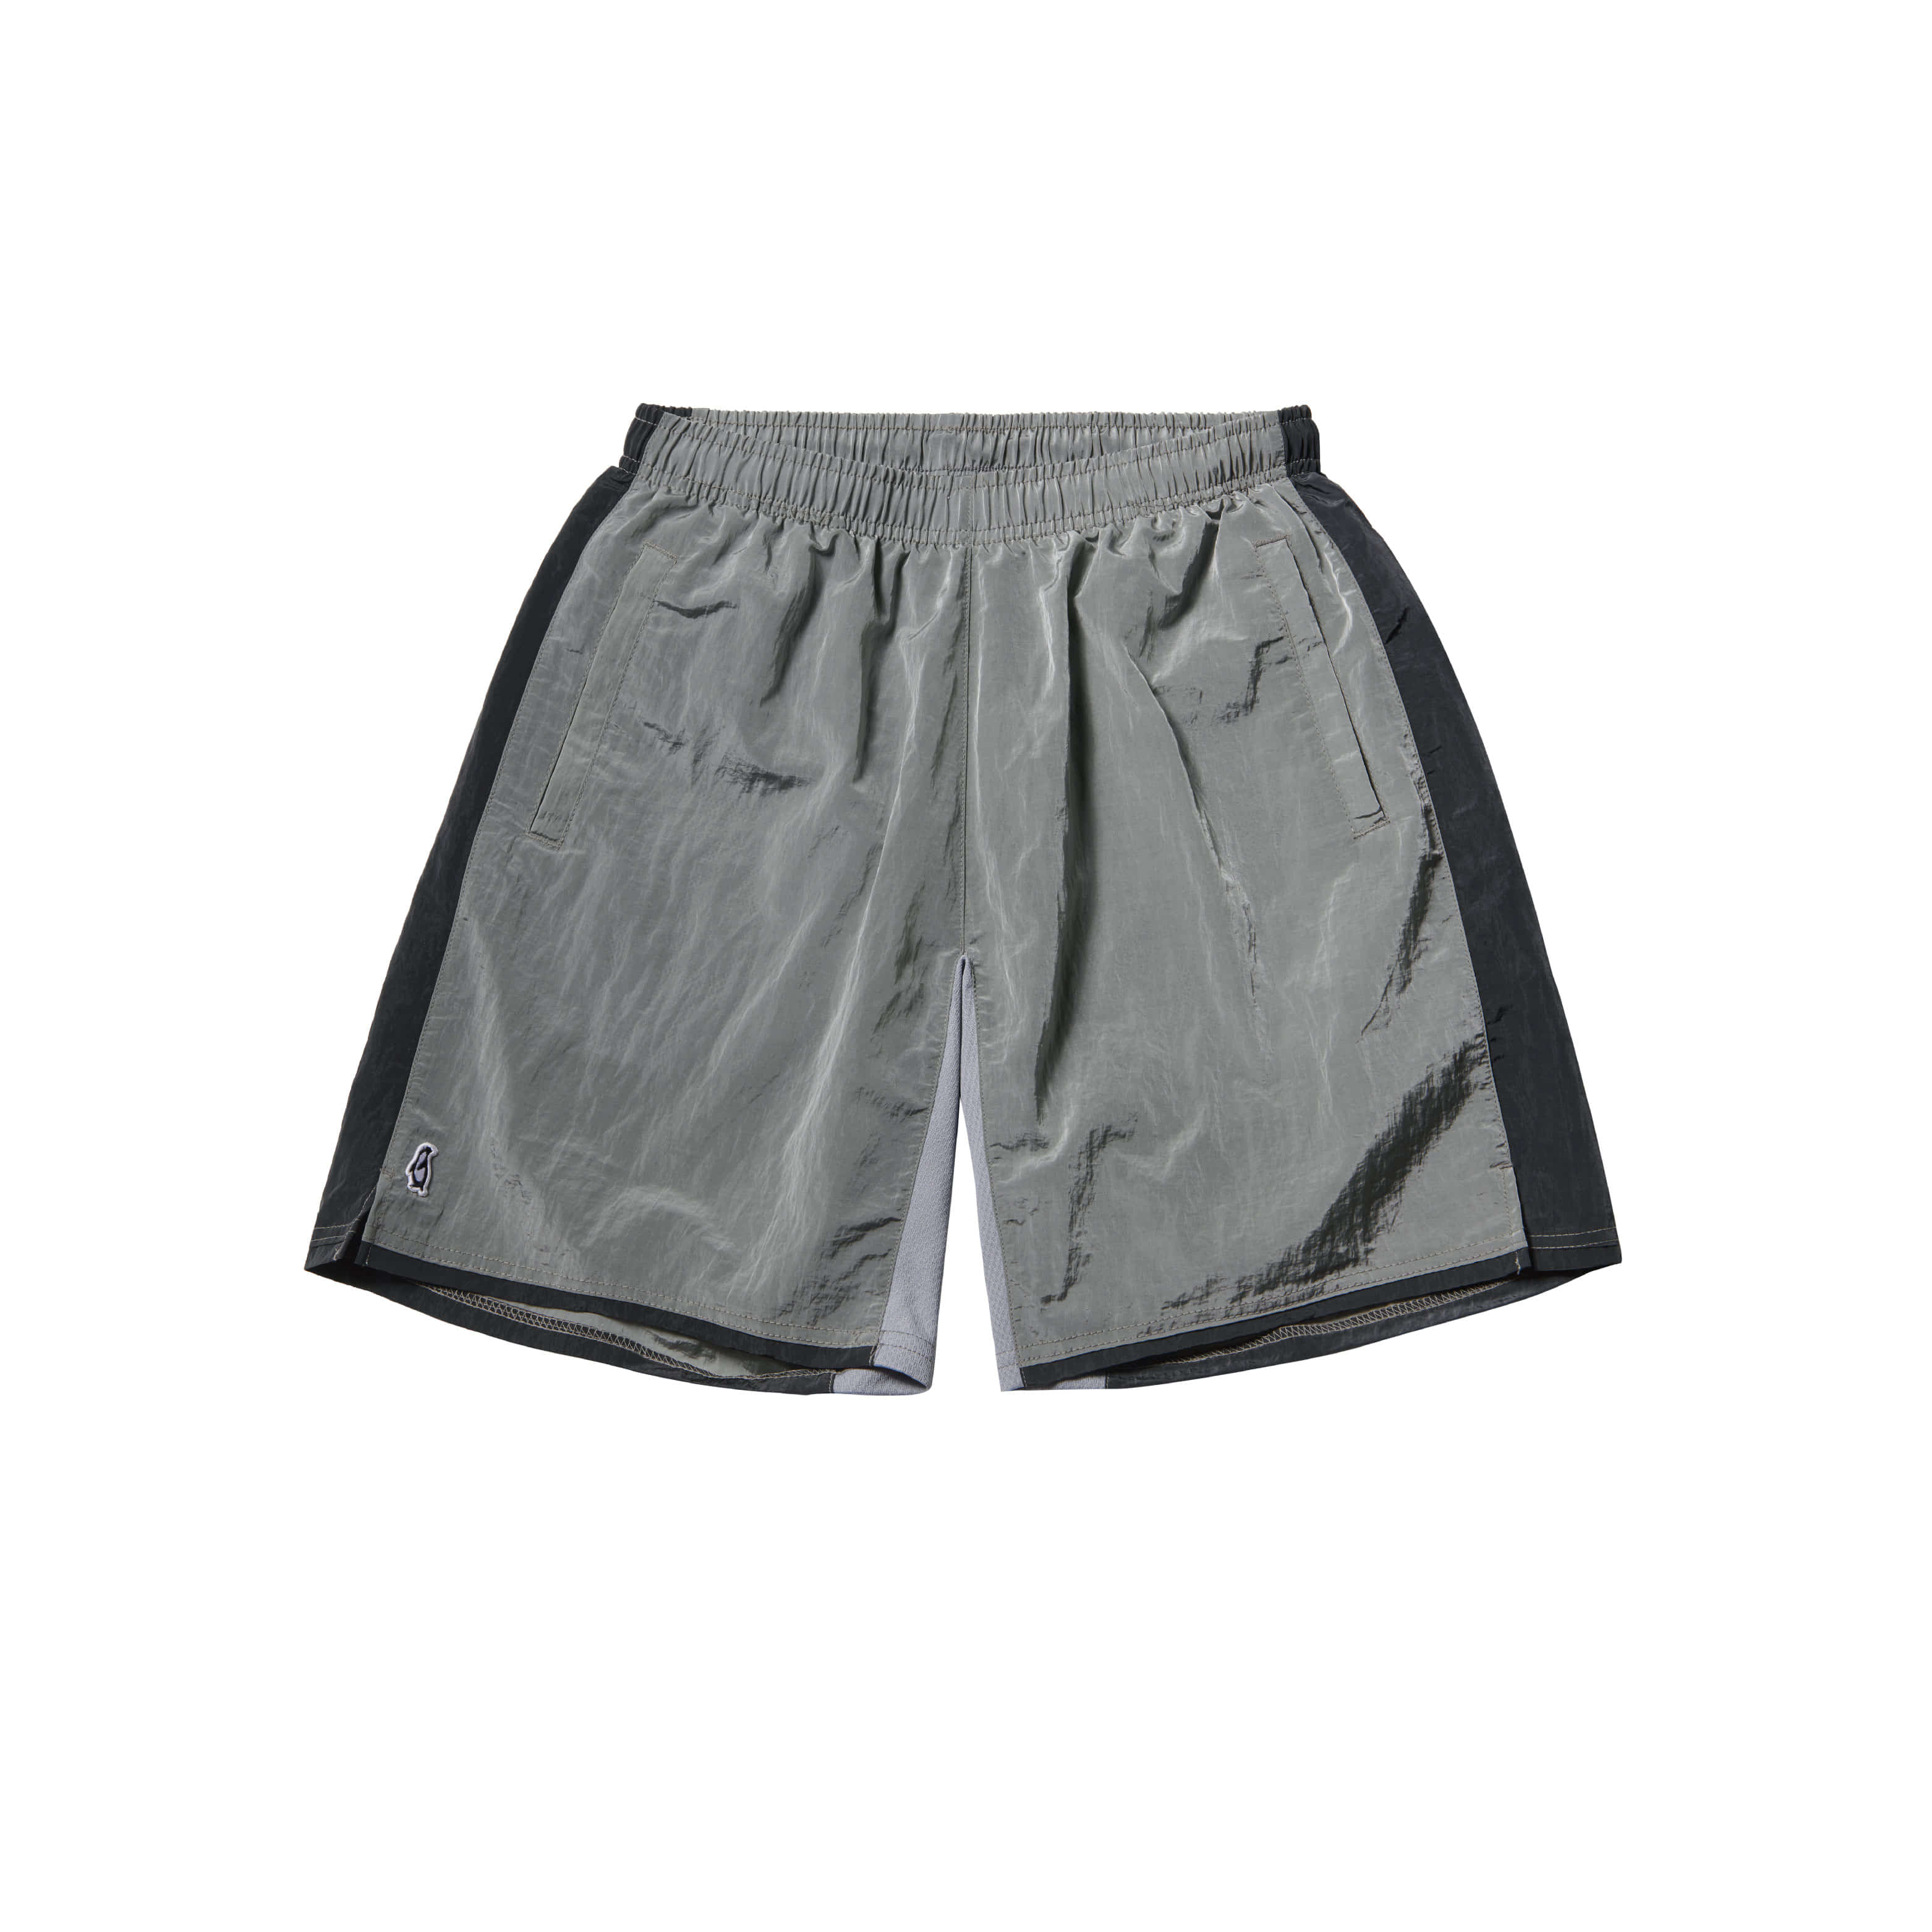 Paul Garments Dying Nylon Shorts Silver